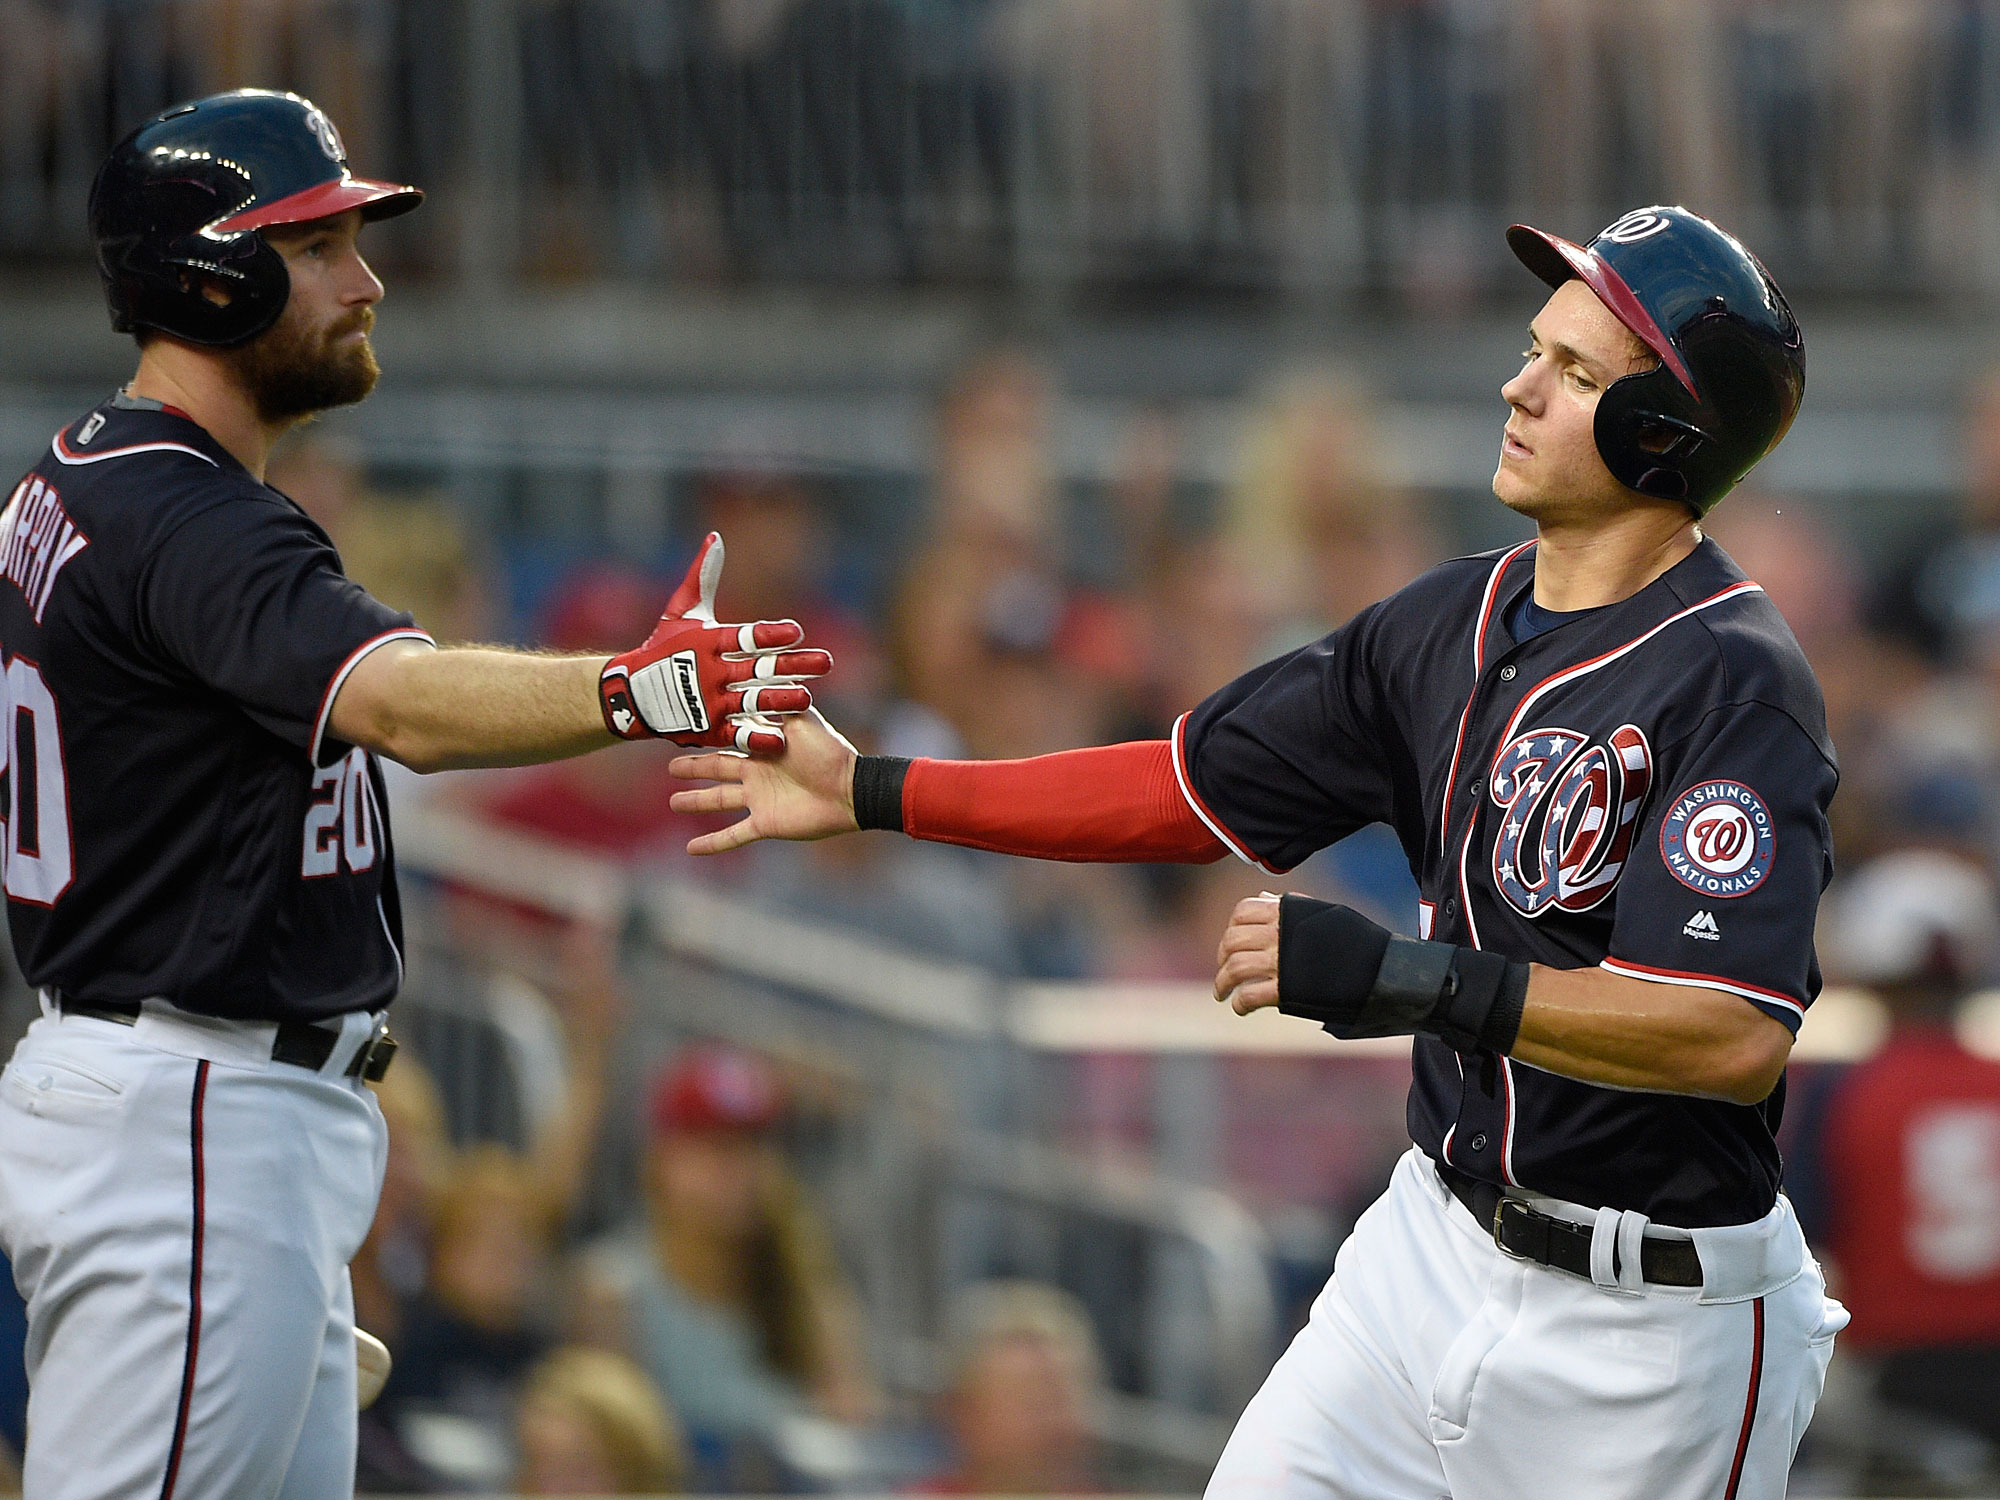 Daniel Murphy and Trea Turner, Washington Nationals